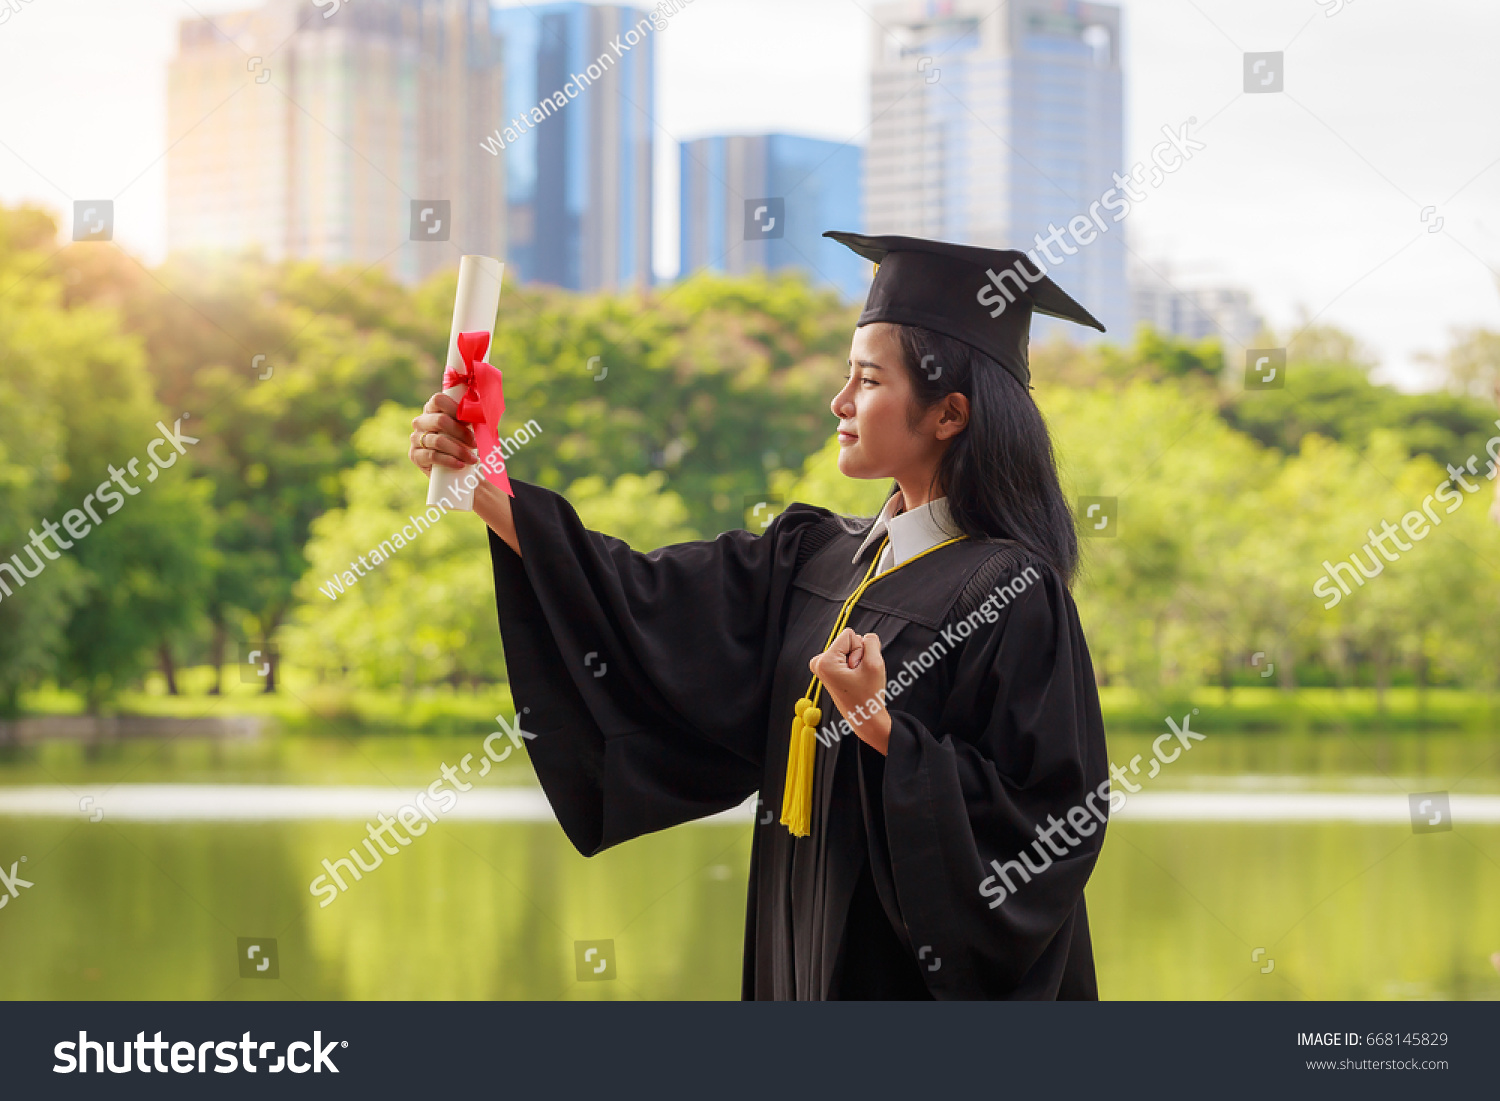 Successful Graduating Student Wearing Cap Gown Stock Photo (Royalty ...